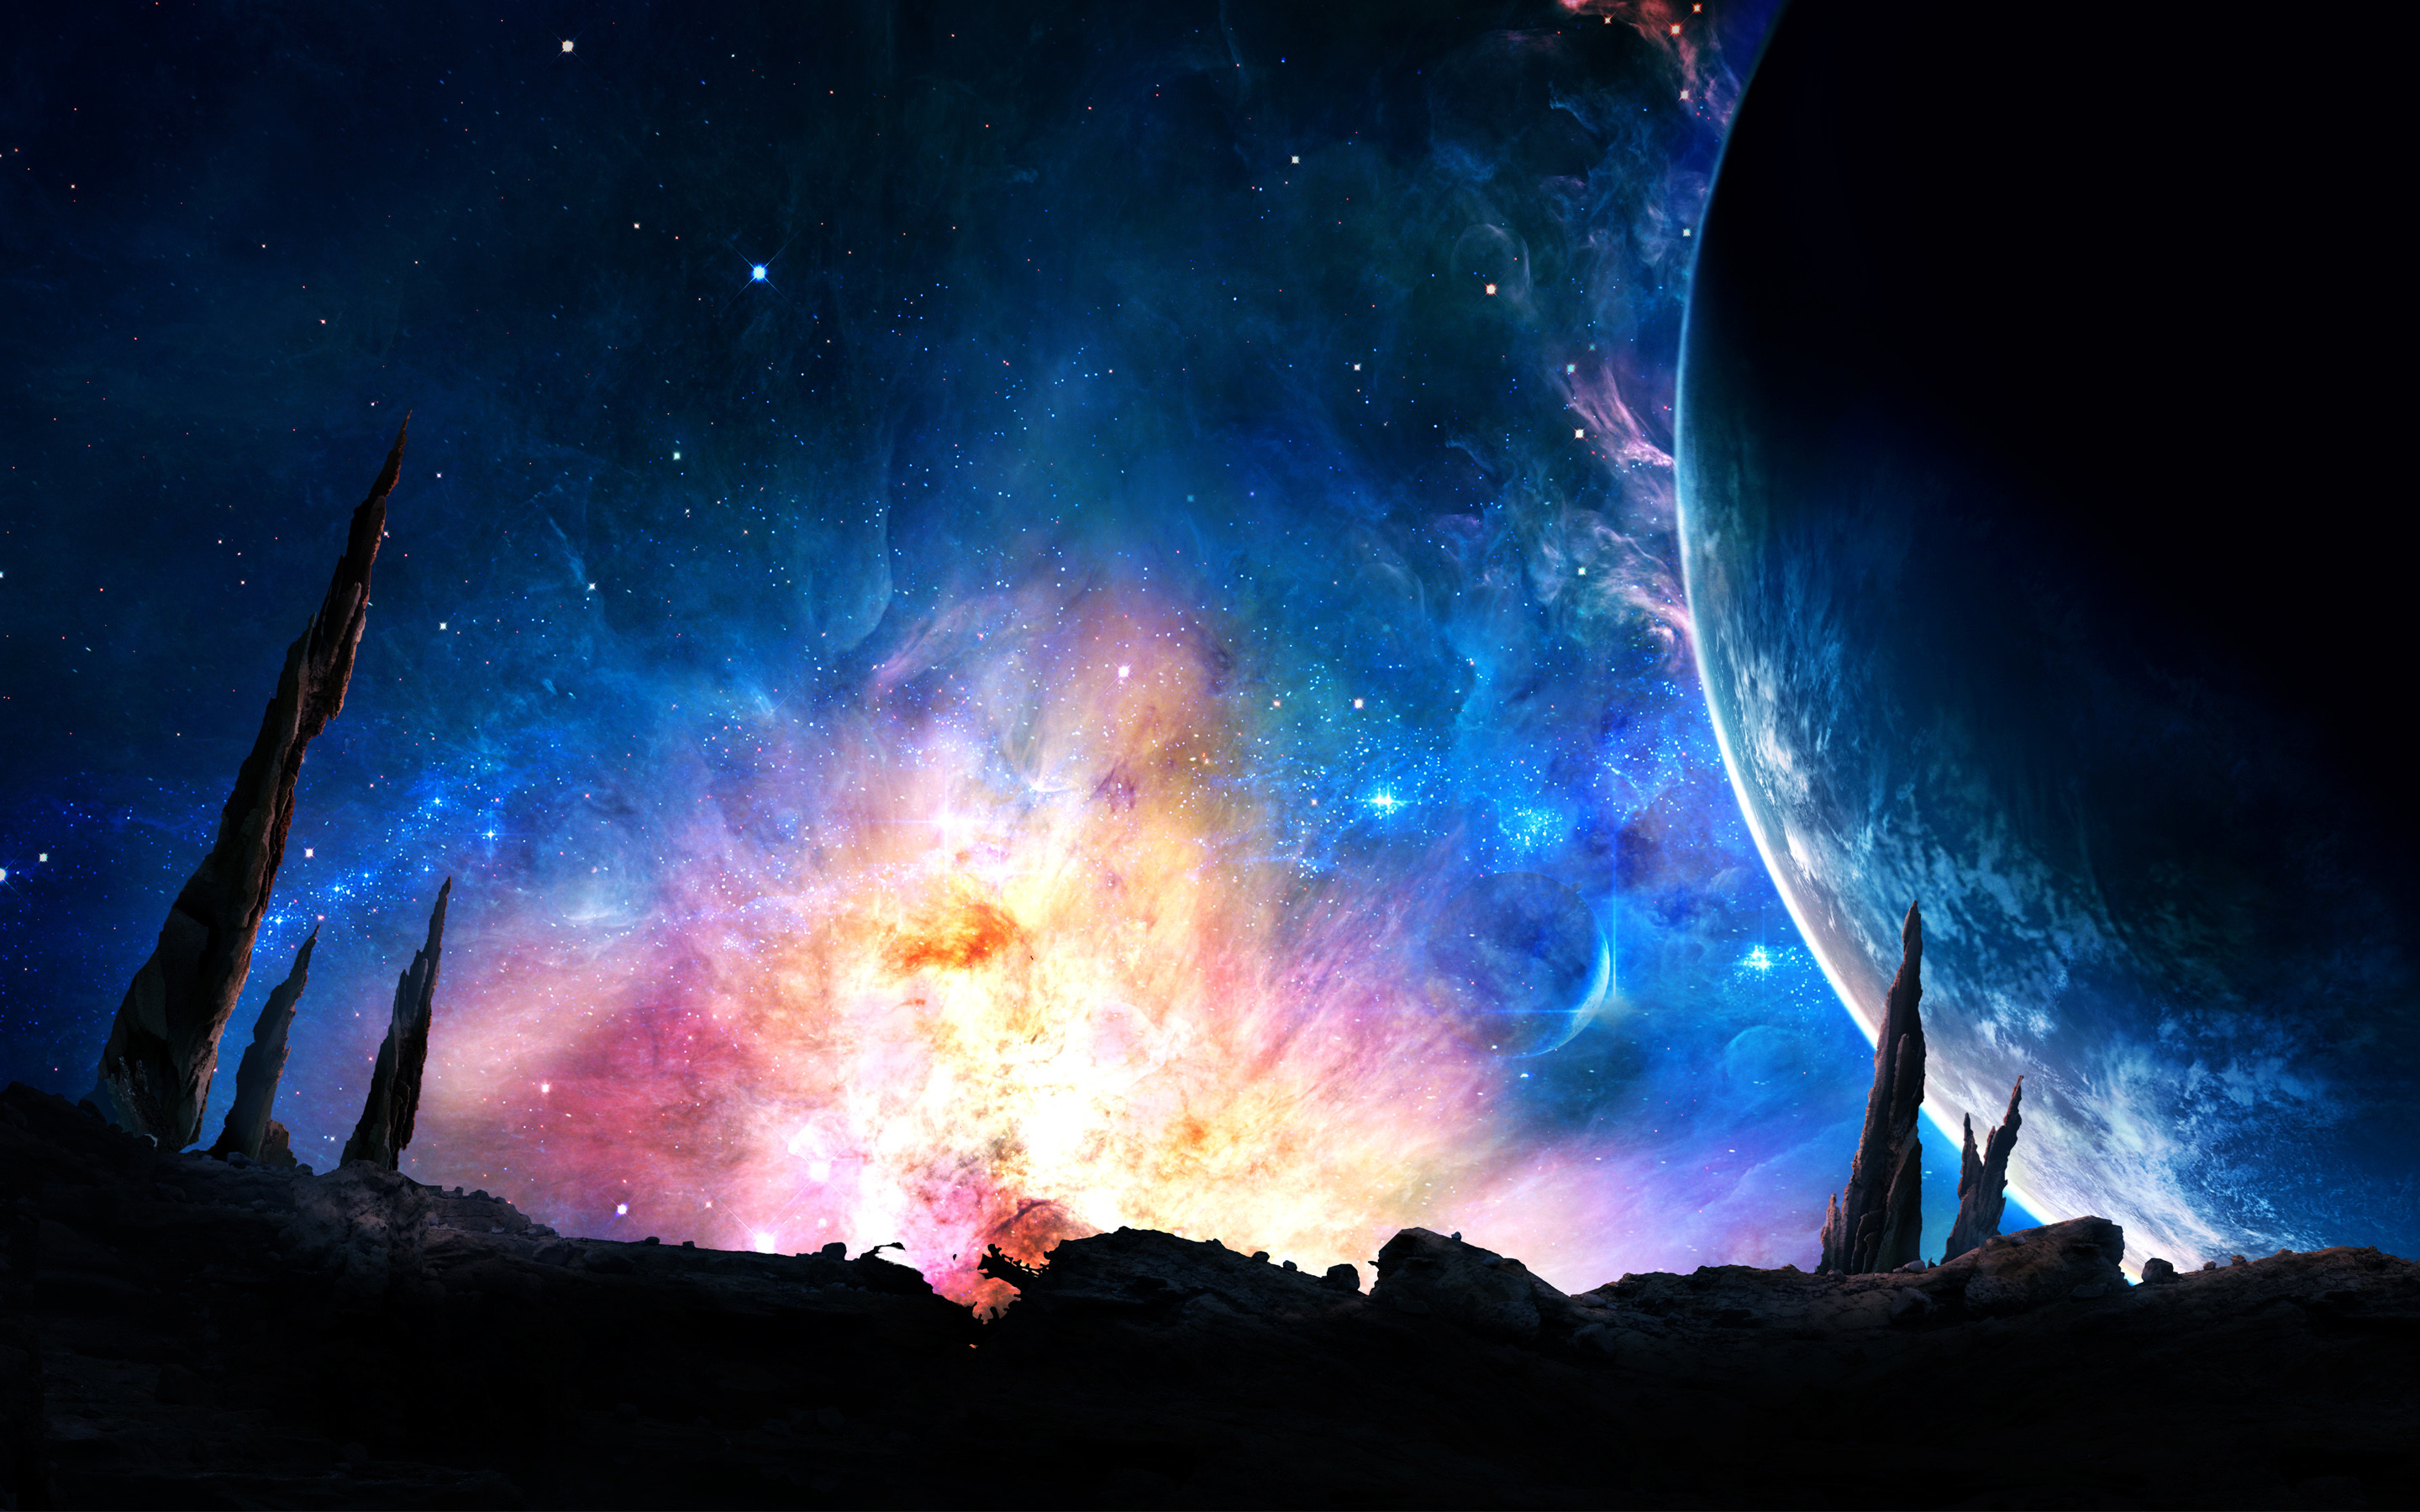 … Colorful Space Stars Nebula Stone Pillars Abstract HD wallpaper for free